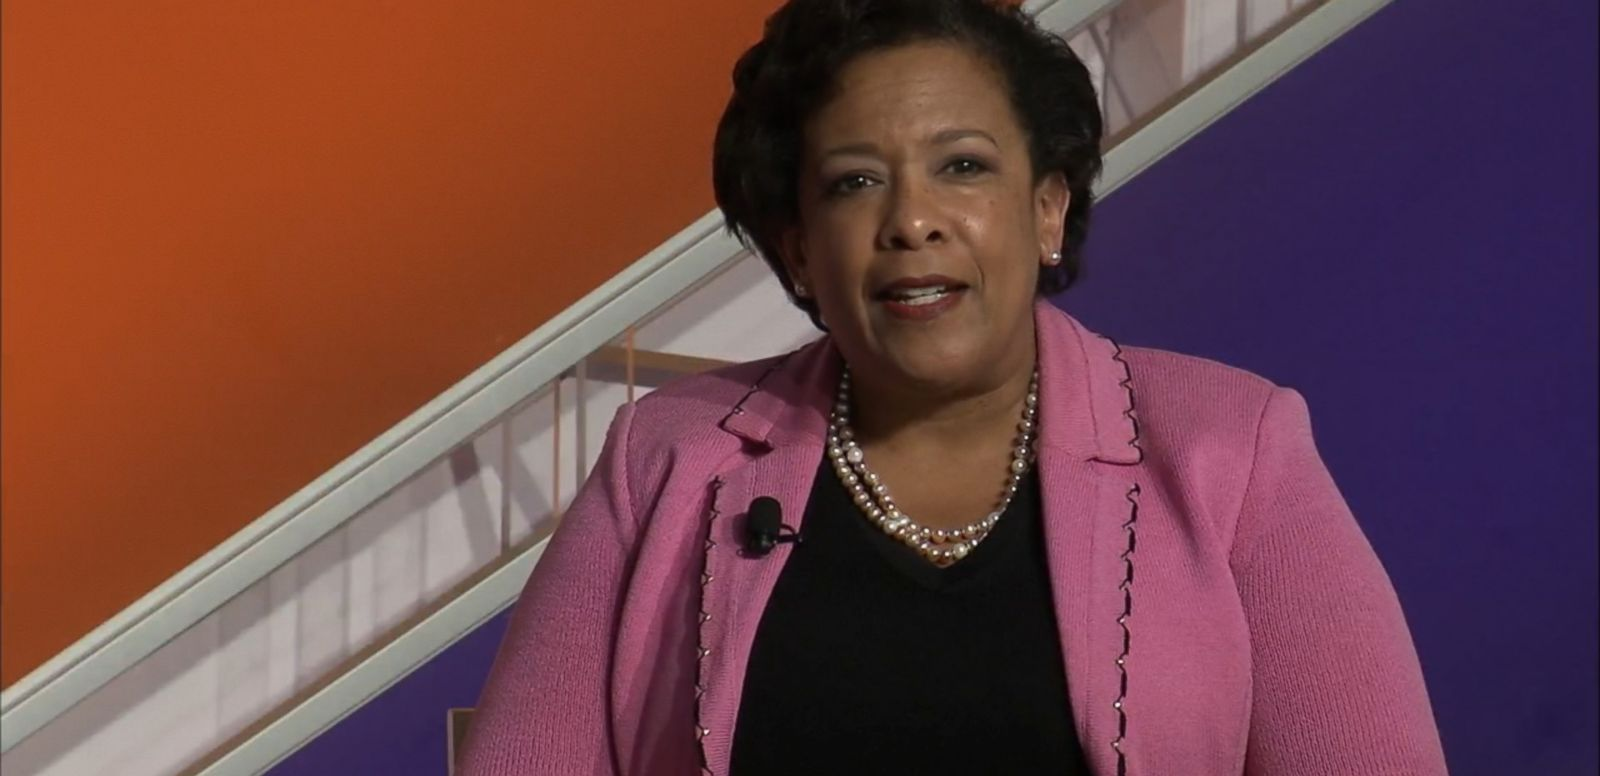 VIDEO: Attorney General Loretta Lynch will accept and follow whatever recommendation the FBI and career prosecutors and investigators make on whether to charge Hillary Clinton in connection to an email probe, she announced today.